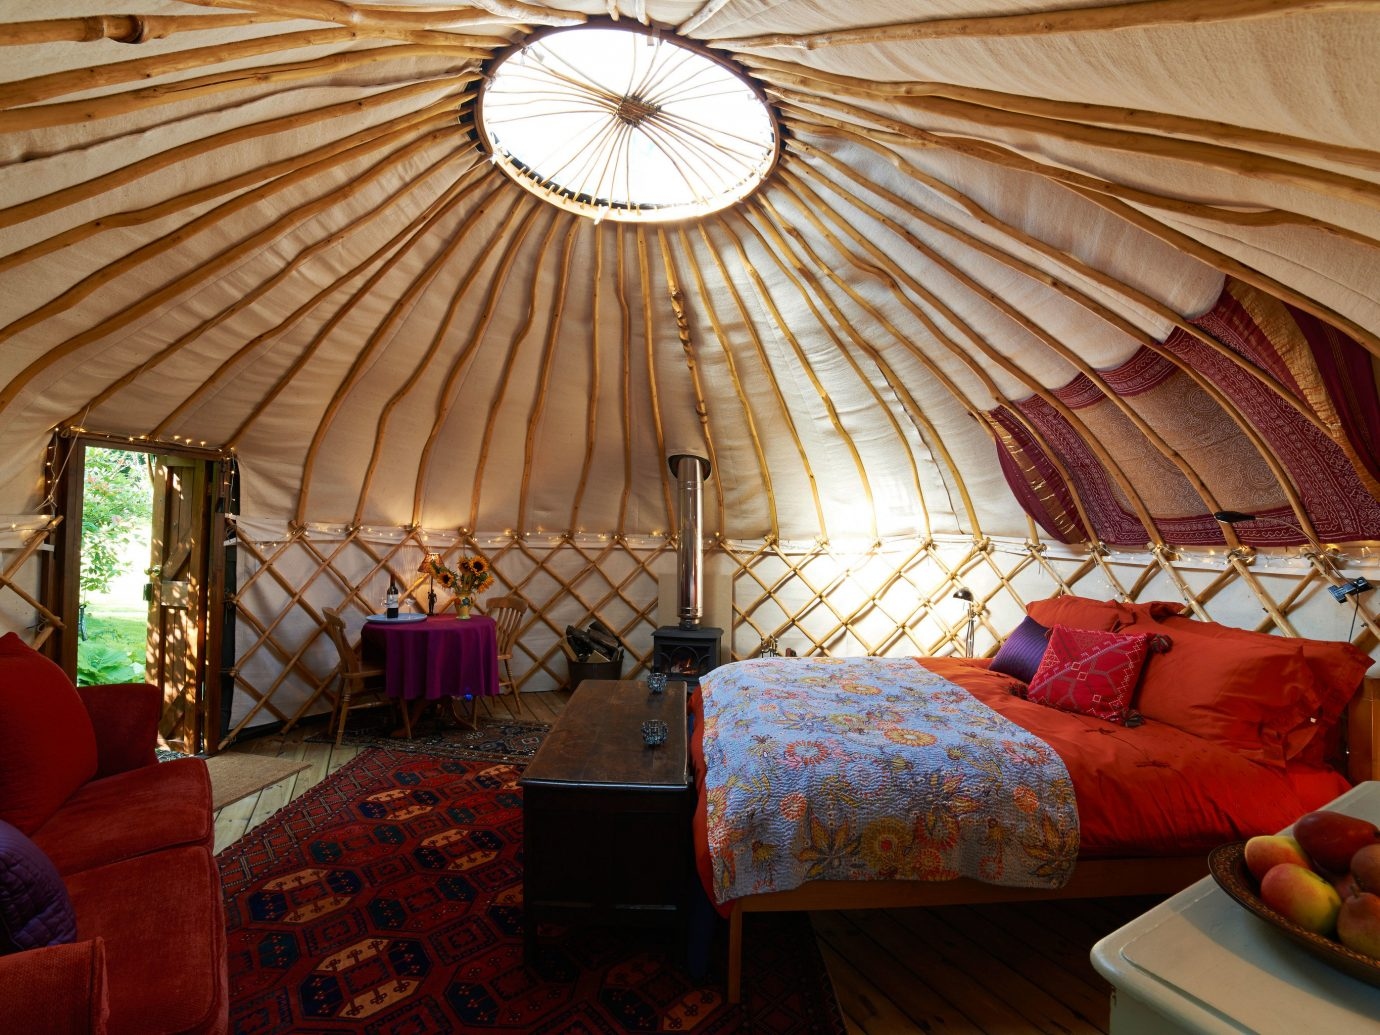 Glamping Luxury Travel Outdoors + Adventure indoor sofa room Living house estate living room interior design home dome wood cottage yurt arch furniture